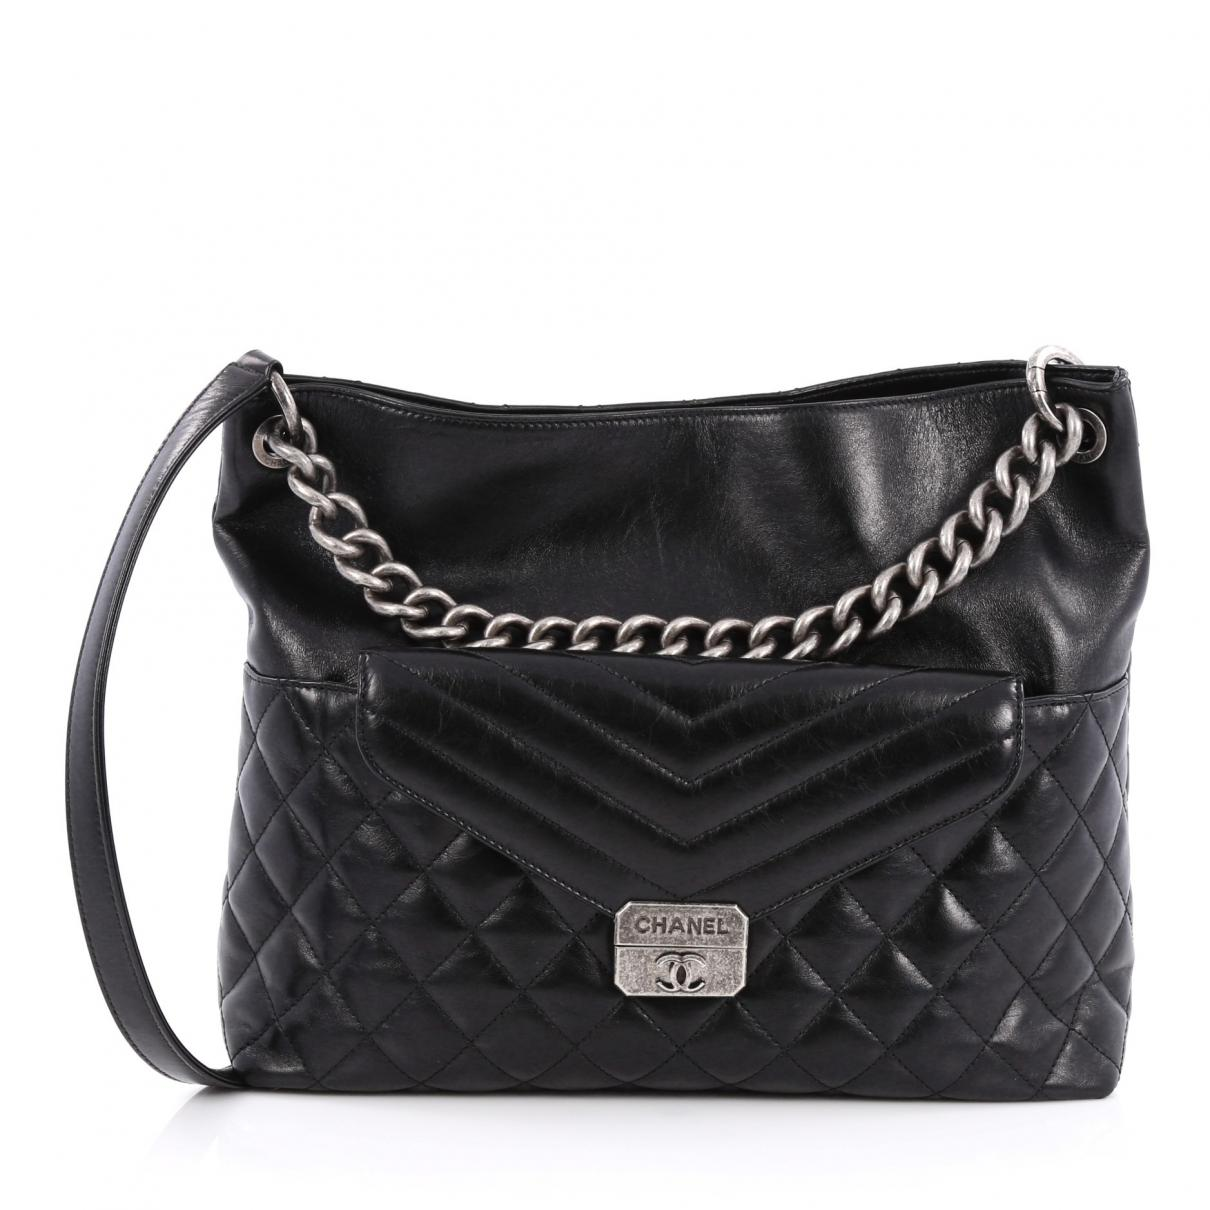 c4af74e64a0f96 Pre Owned Black Chanel Purses | Stanford Center for Opportunity ...